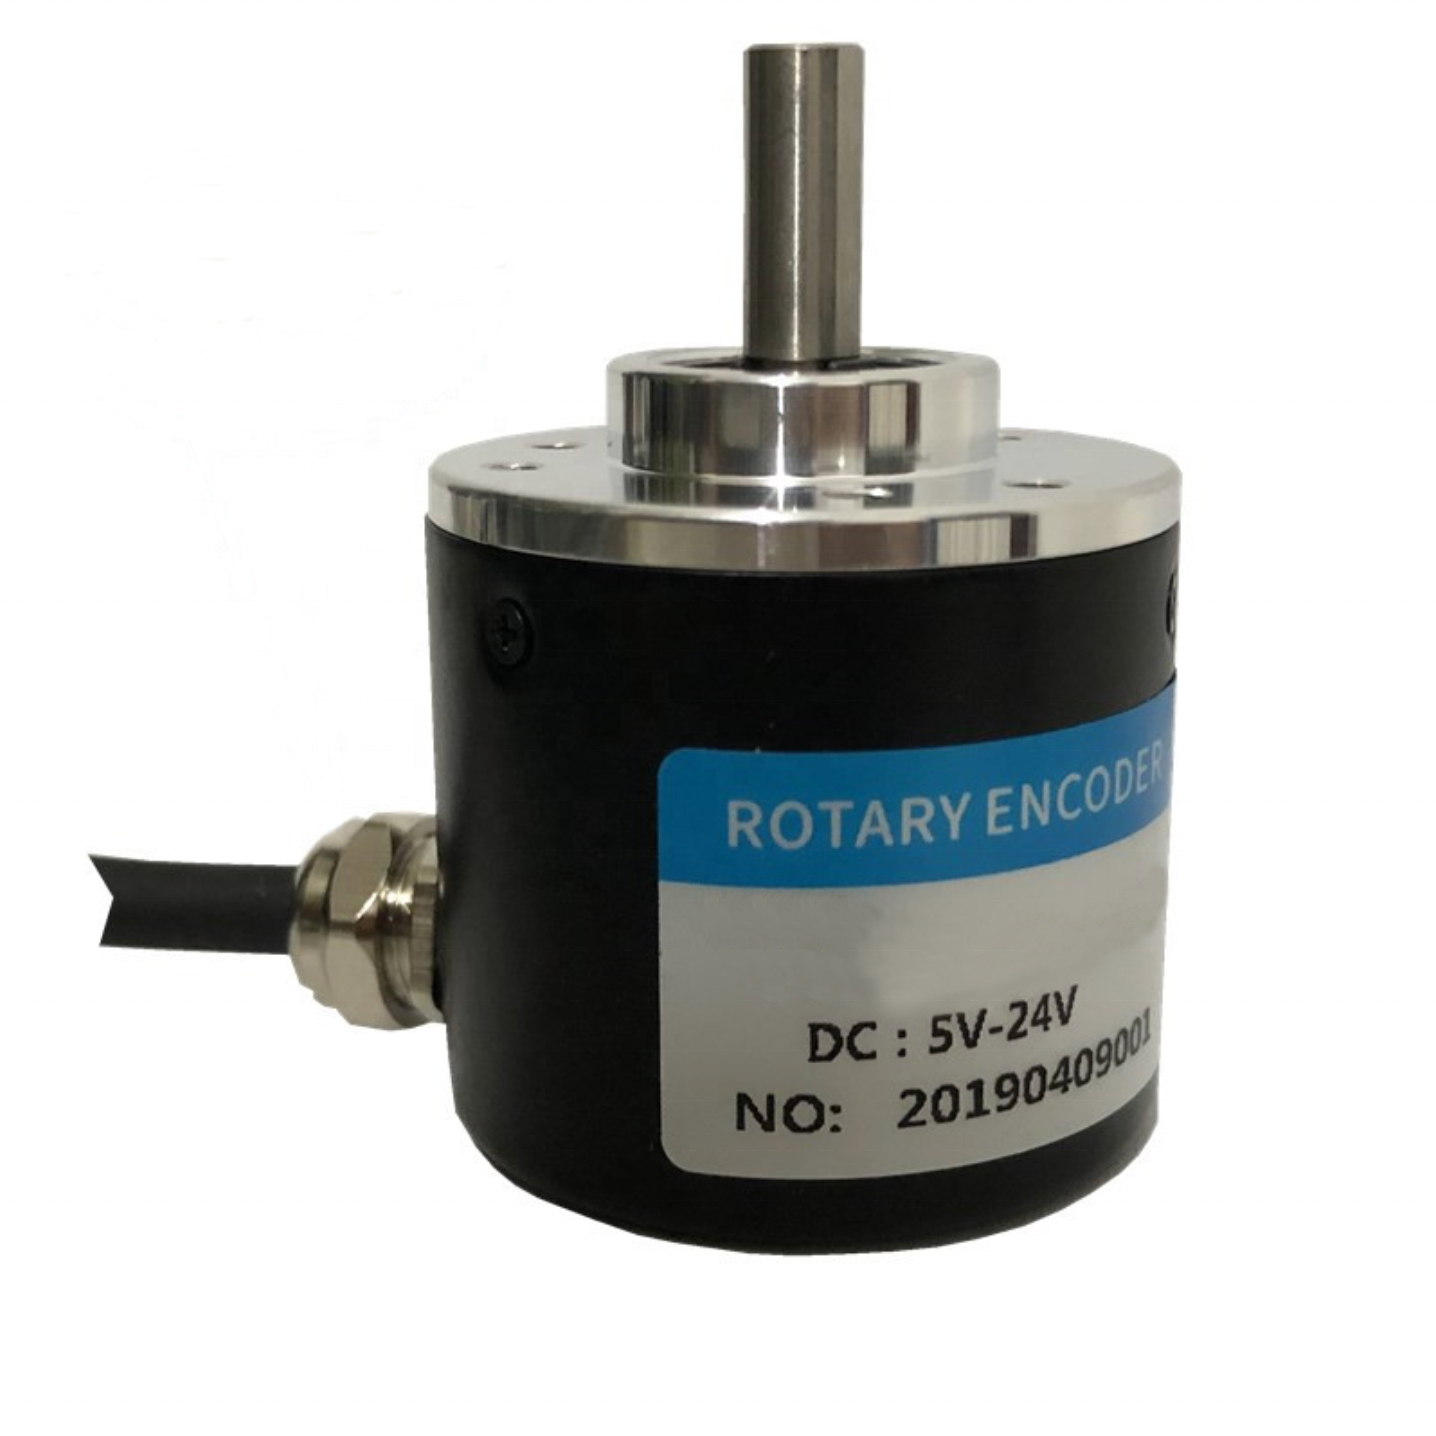 New incremental AB phase photoelectric encoder,100/360/400/600PPR resolution can be customized